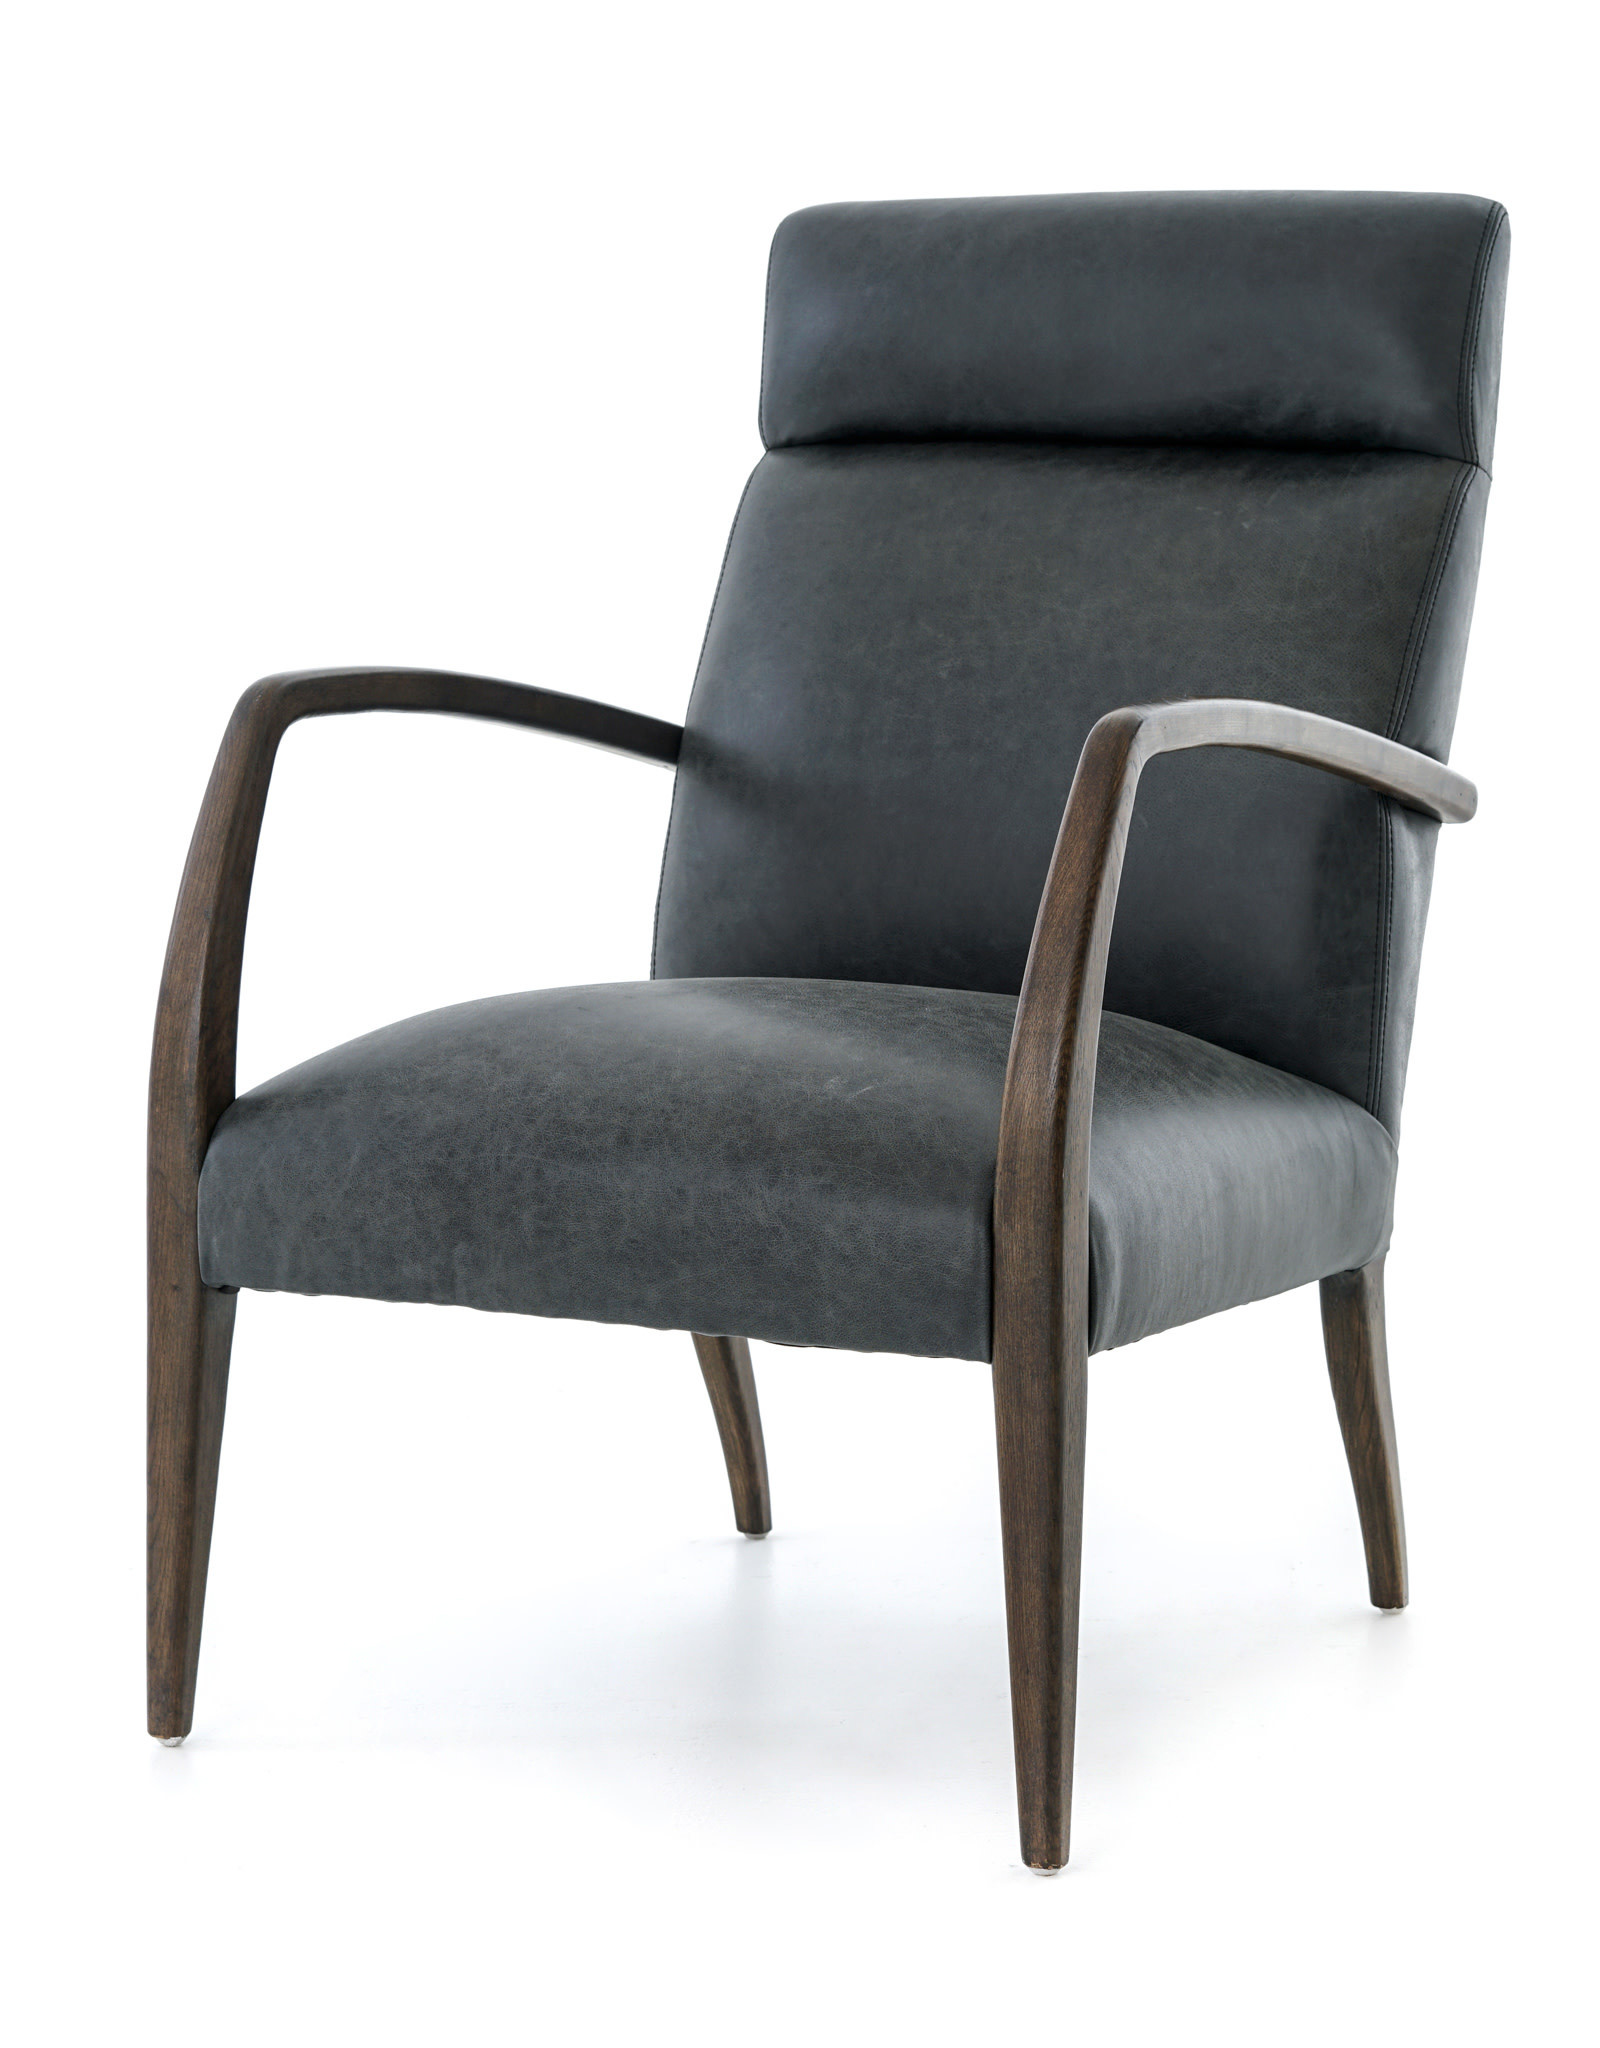 Wood & Leather High Back Chair